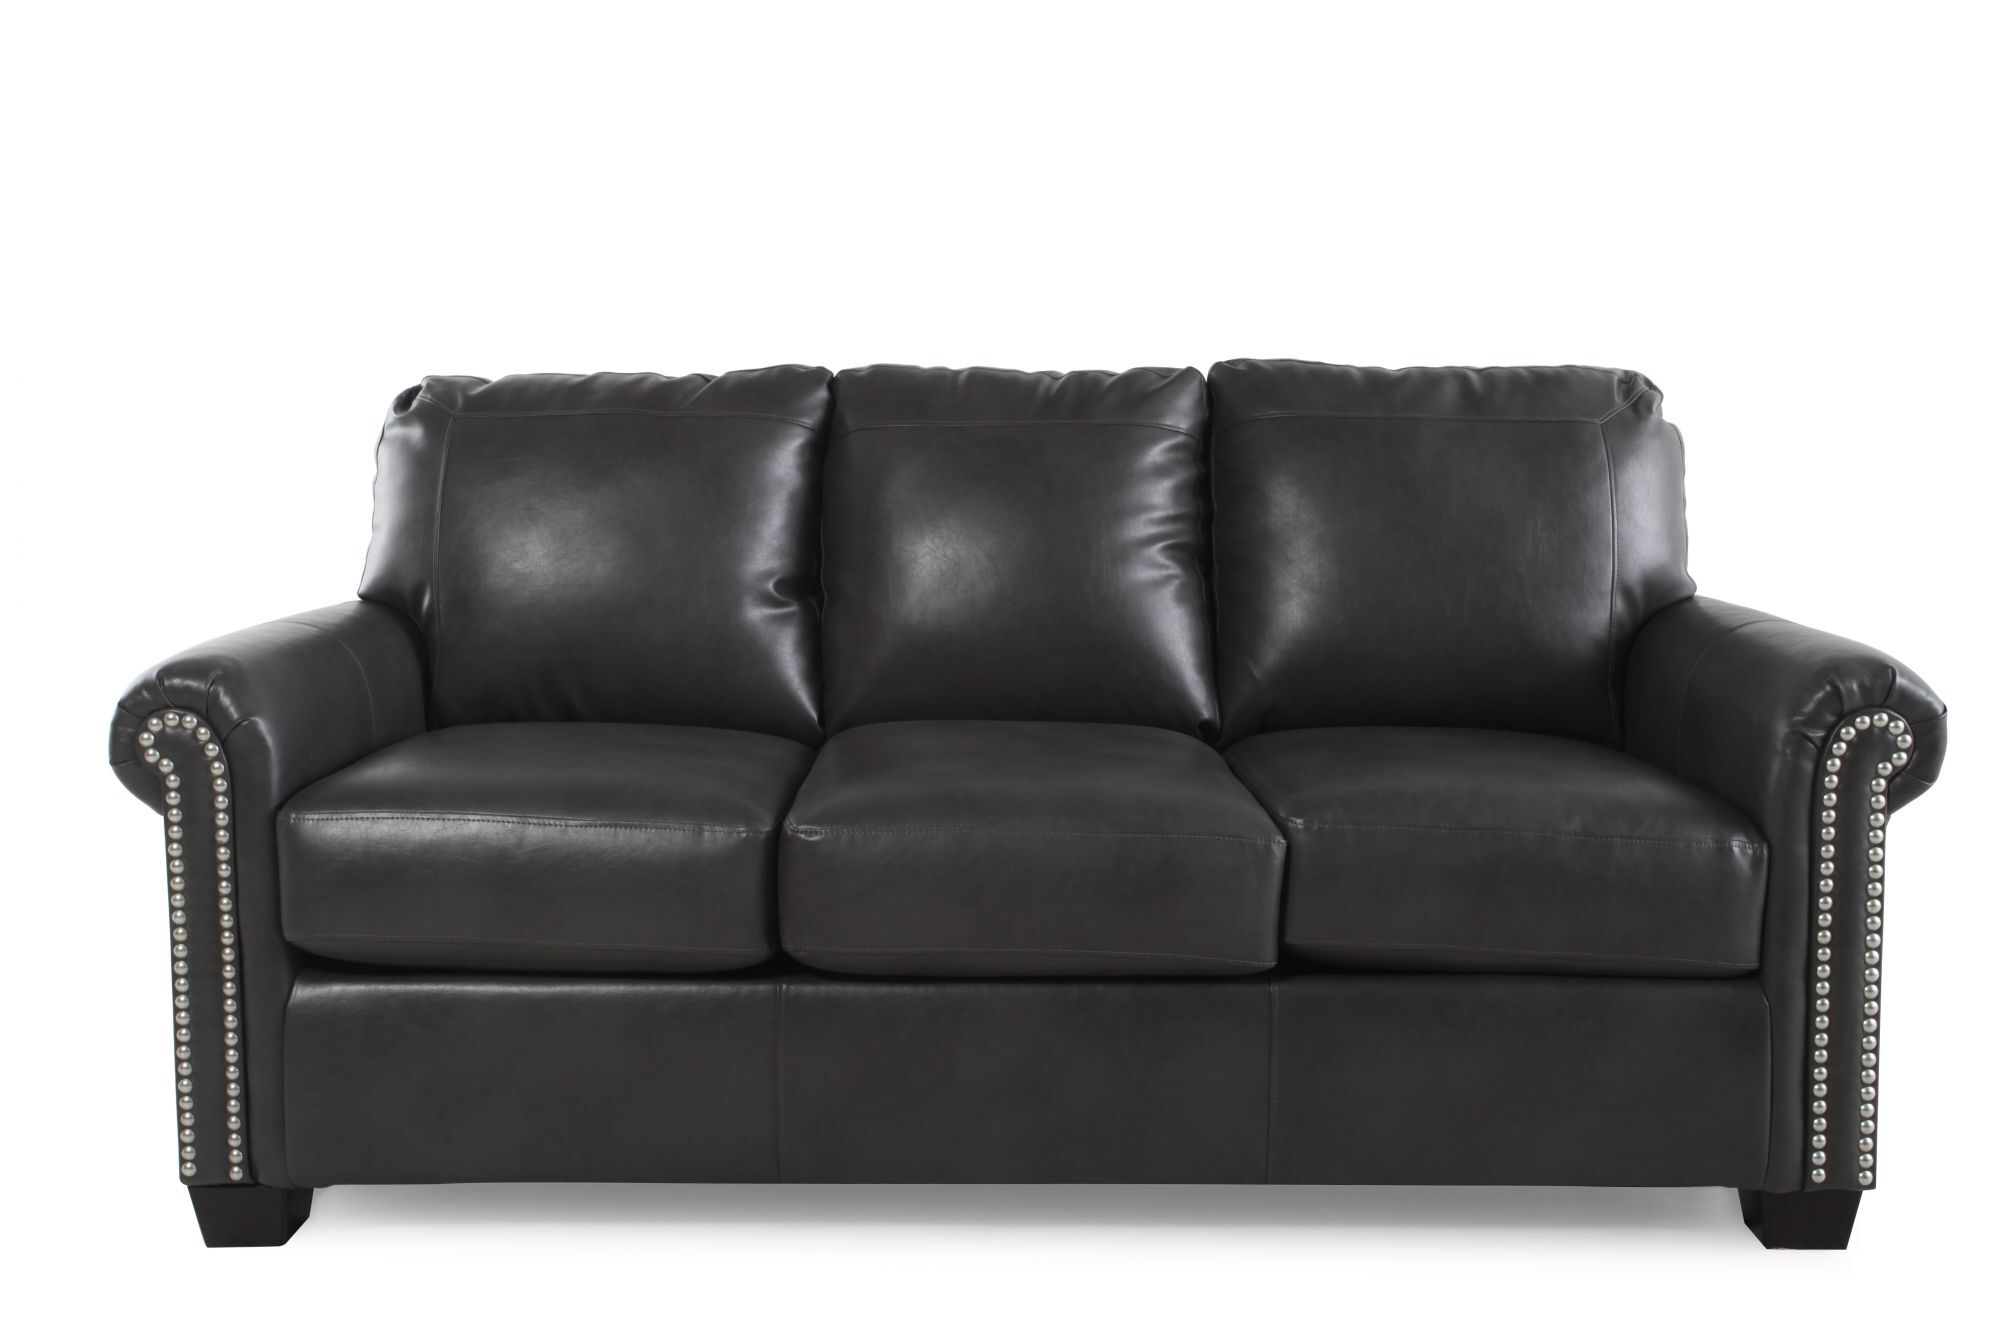 leather sleeper sofa with nailheads extra long covers for pets nailhead accented 78 mathis brothers furniture quot